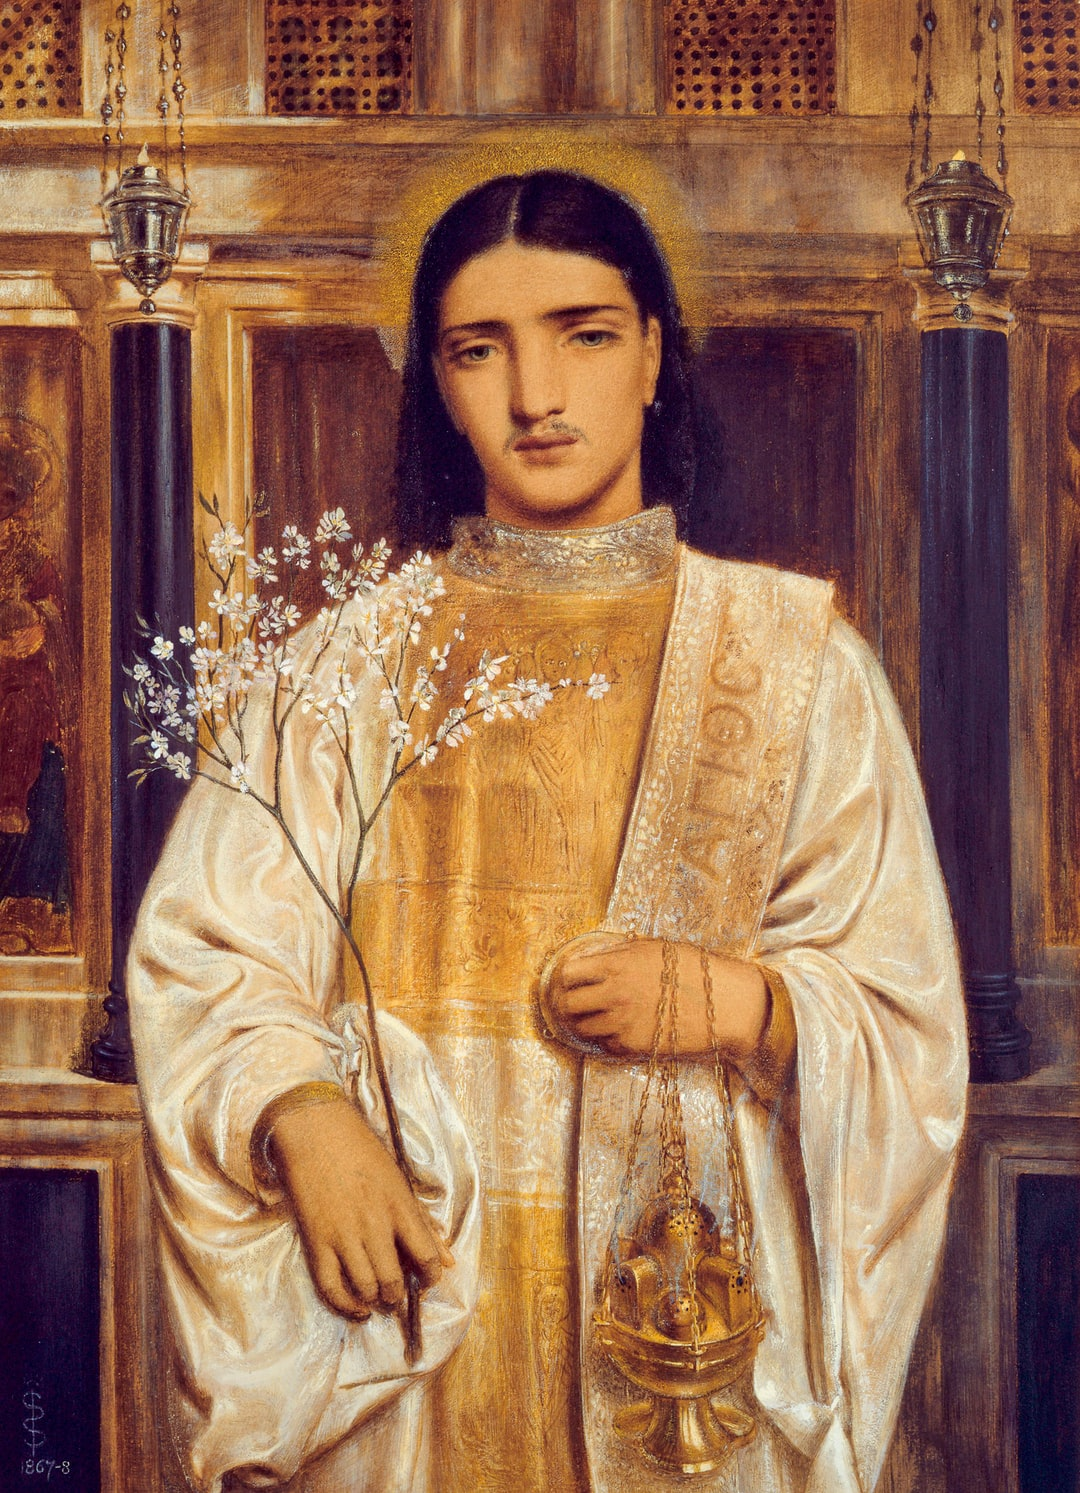 A Saint of the Eastern Church (formerly called A Greek Acolyte), 1867-68. Artist: Simeon Solomon